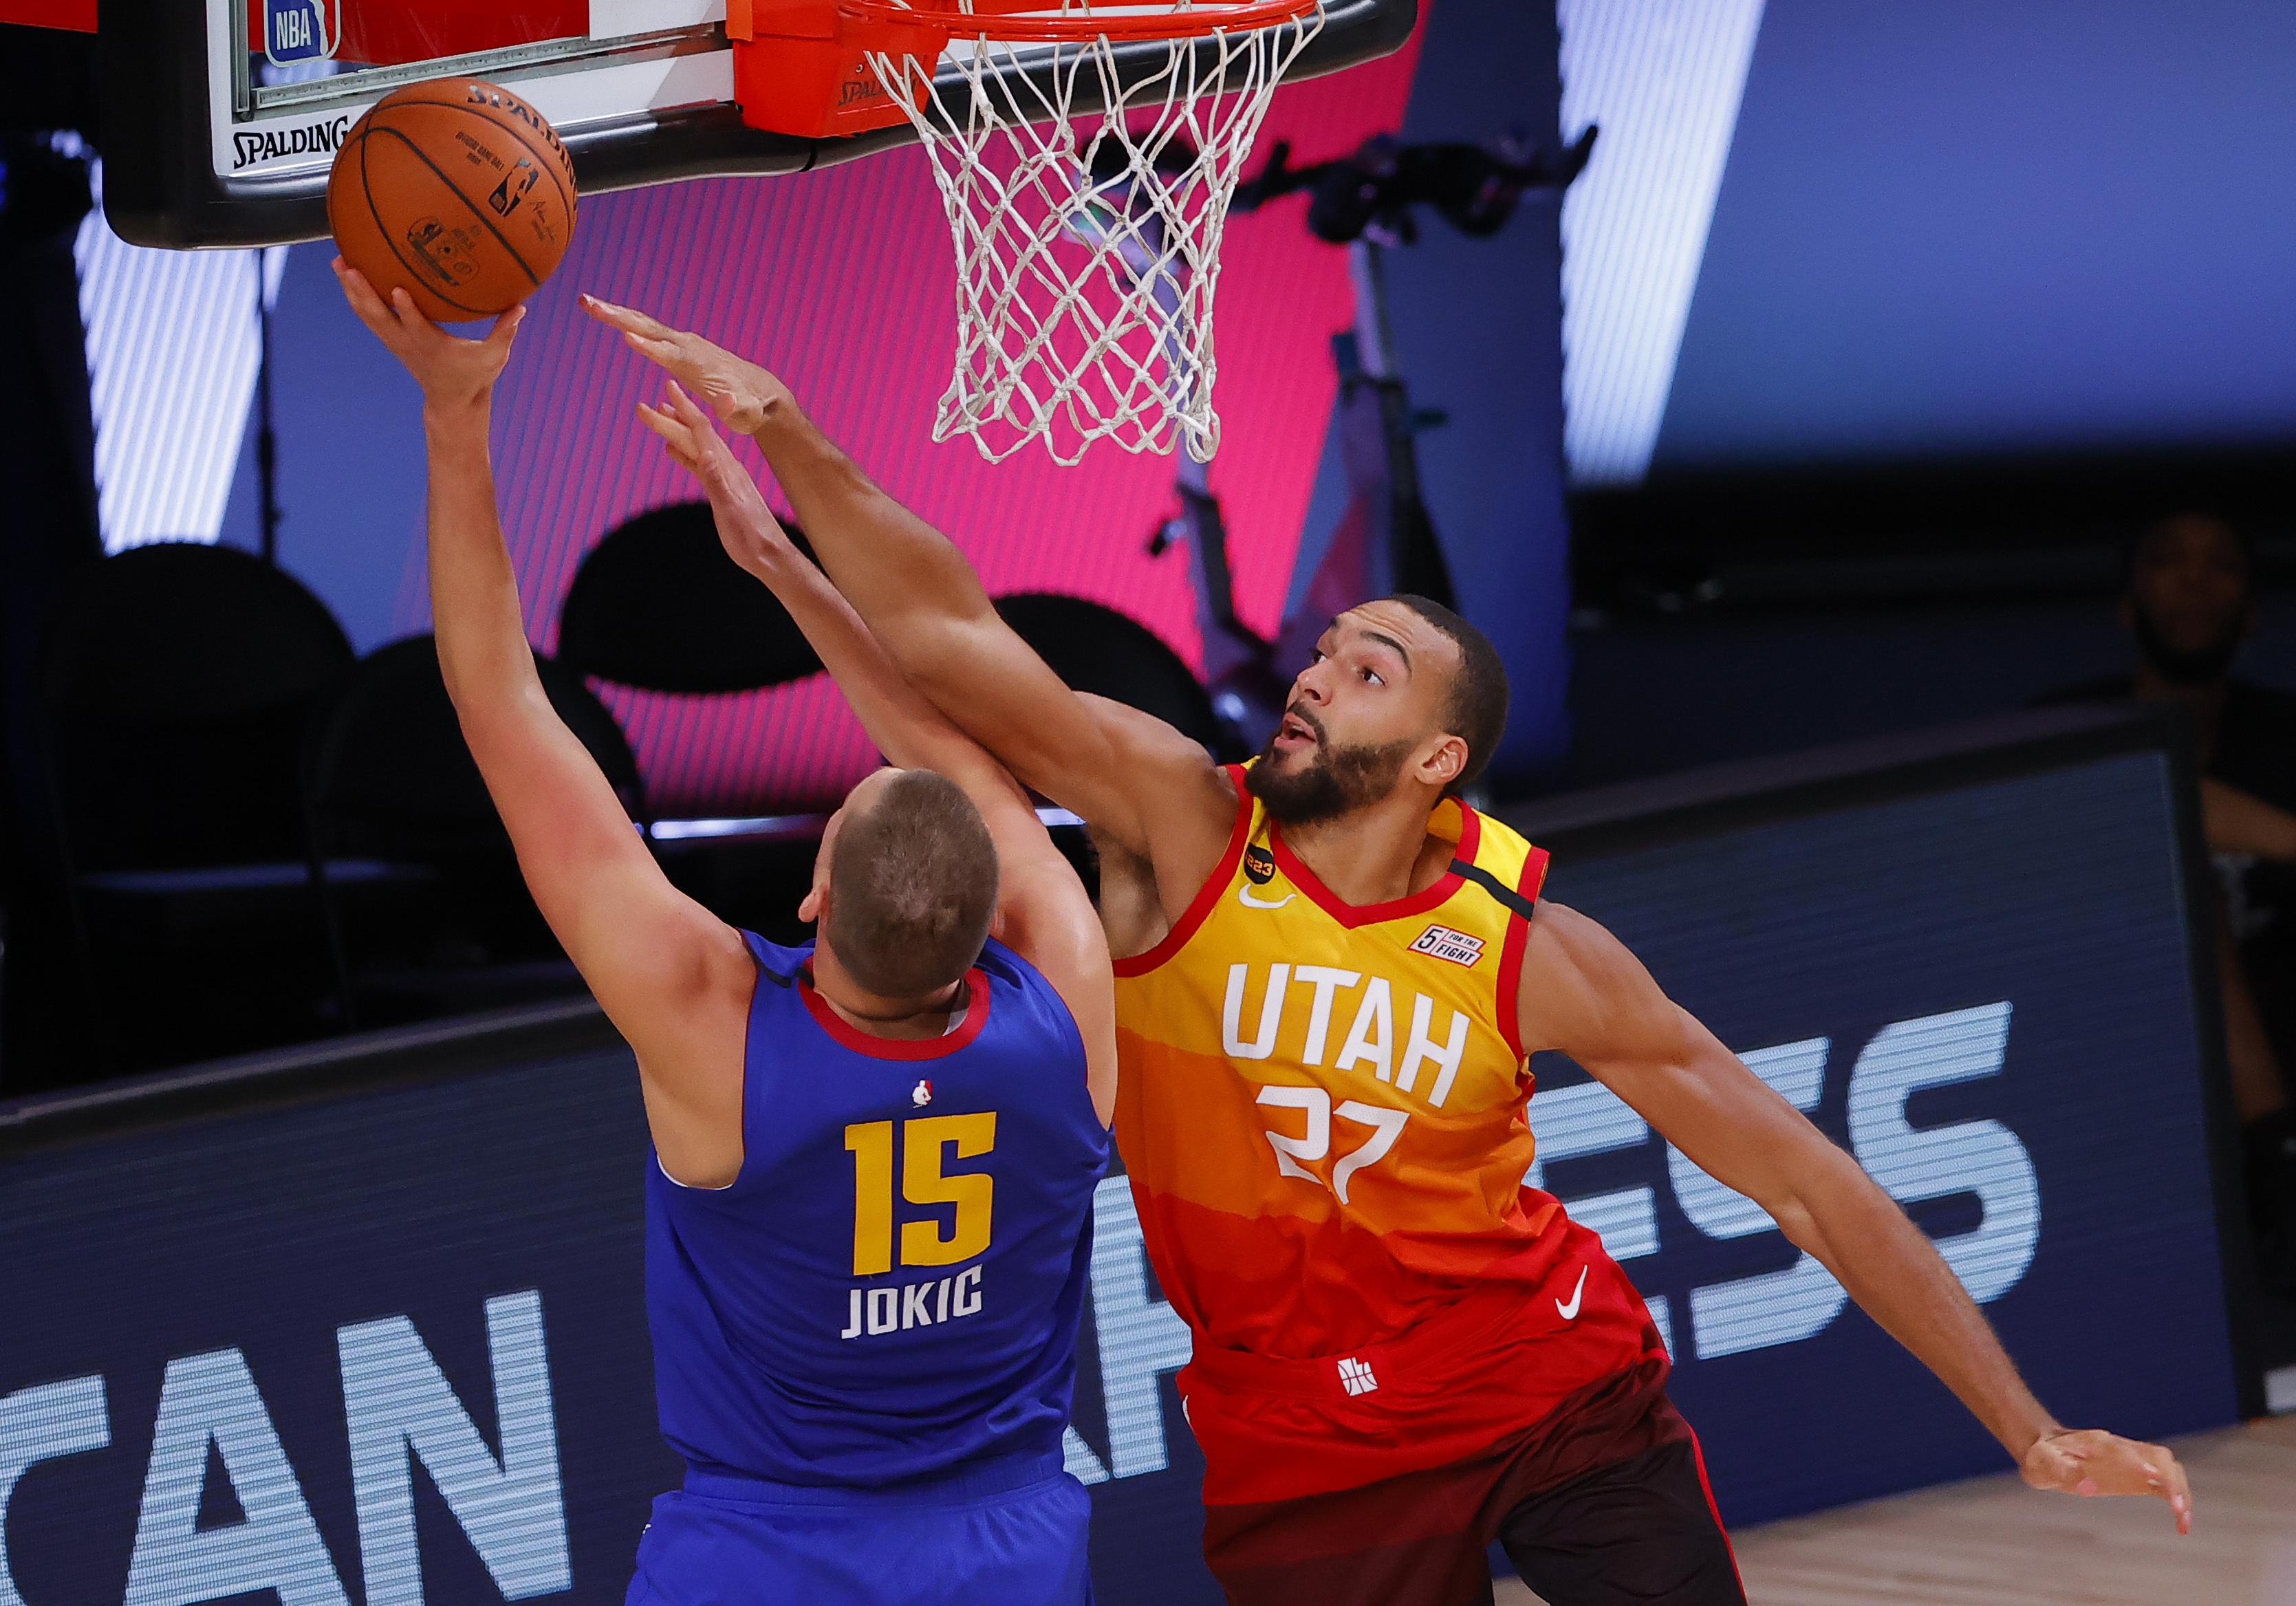 Utah Jazz's Rudy Gobert, right, defends against Denver Nuggets' Nikola Jokic during the third quarter of Game 4 of an NBA basketball first-round playoff series, Sunday, Aug. 23, 2020, in Lake Buena Vista, Fla. (Kevin C. Cox/Pool Photo via AP)